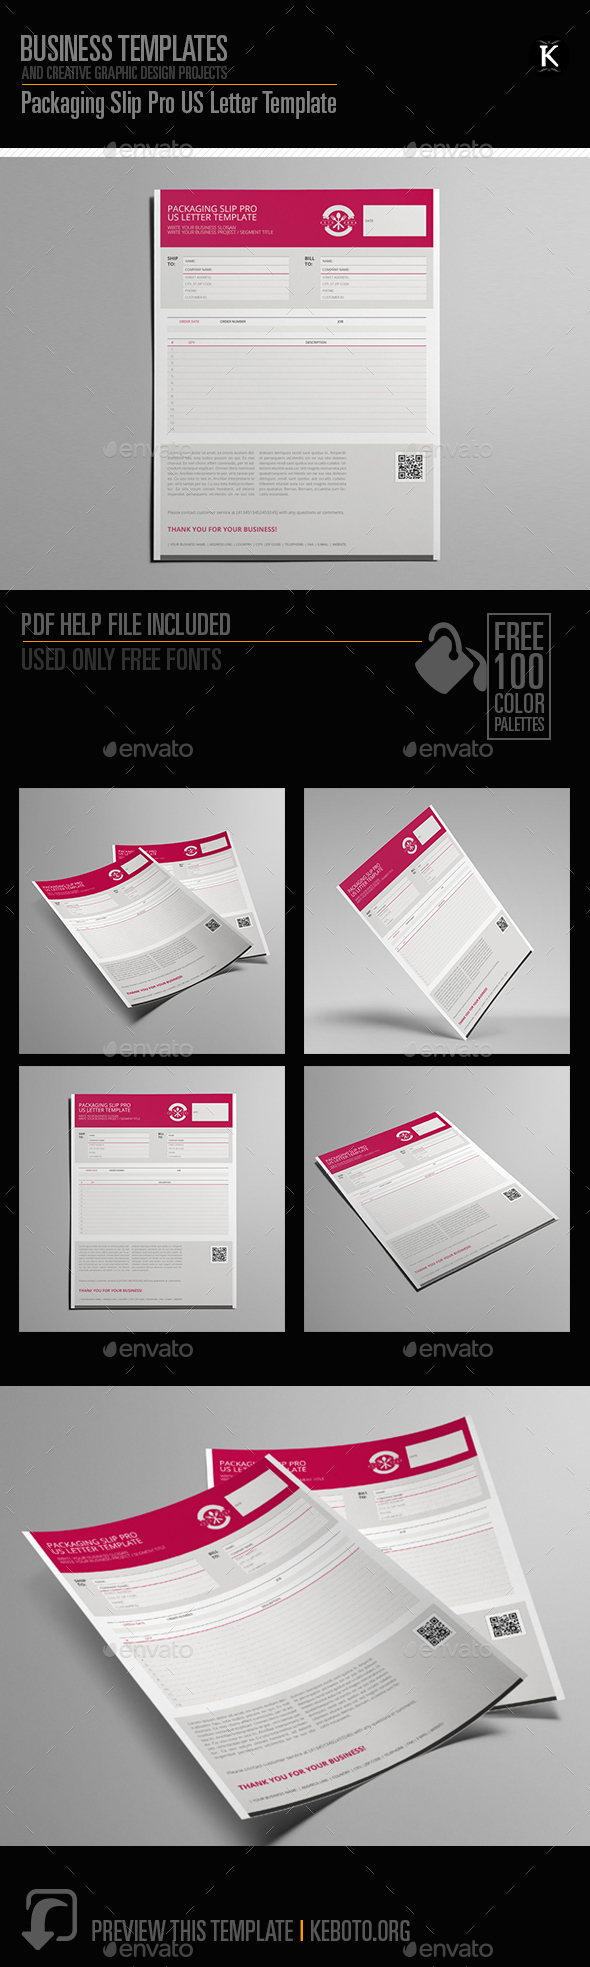 GraphicRiver Packaging Slip Pro US Letter Template 20649147